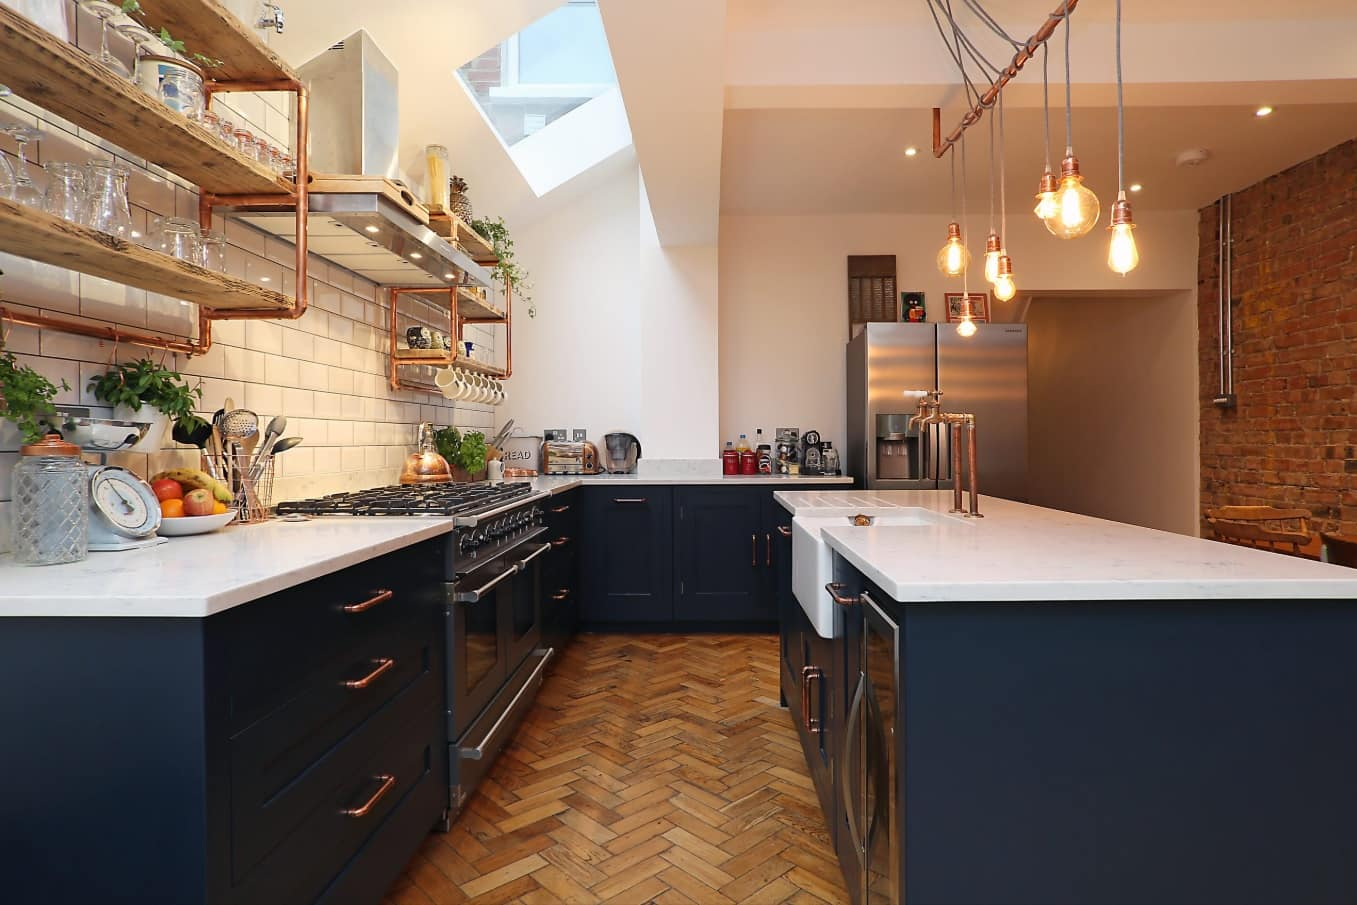 Overview of 10+ Biggest Home Design Trends in 2019 so Far. Blue colored mixed Classic and Steampunk kitchen with metro tile at the splashback